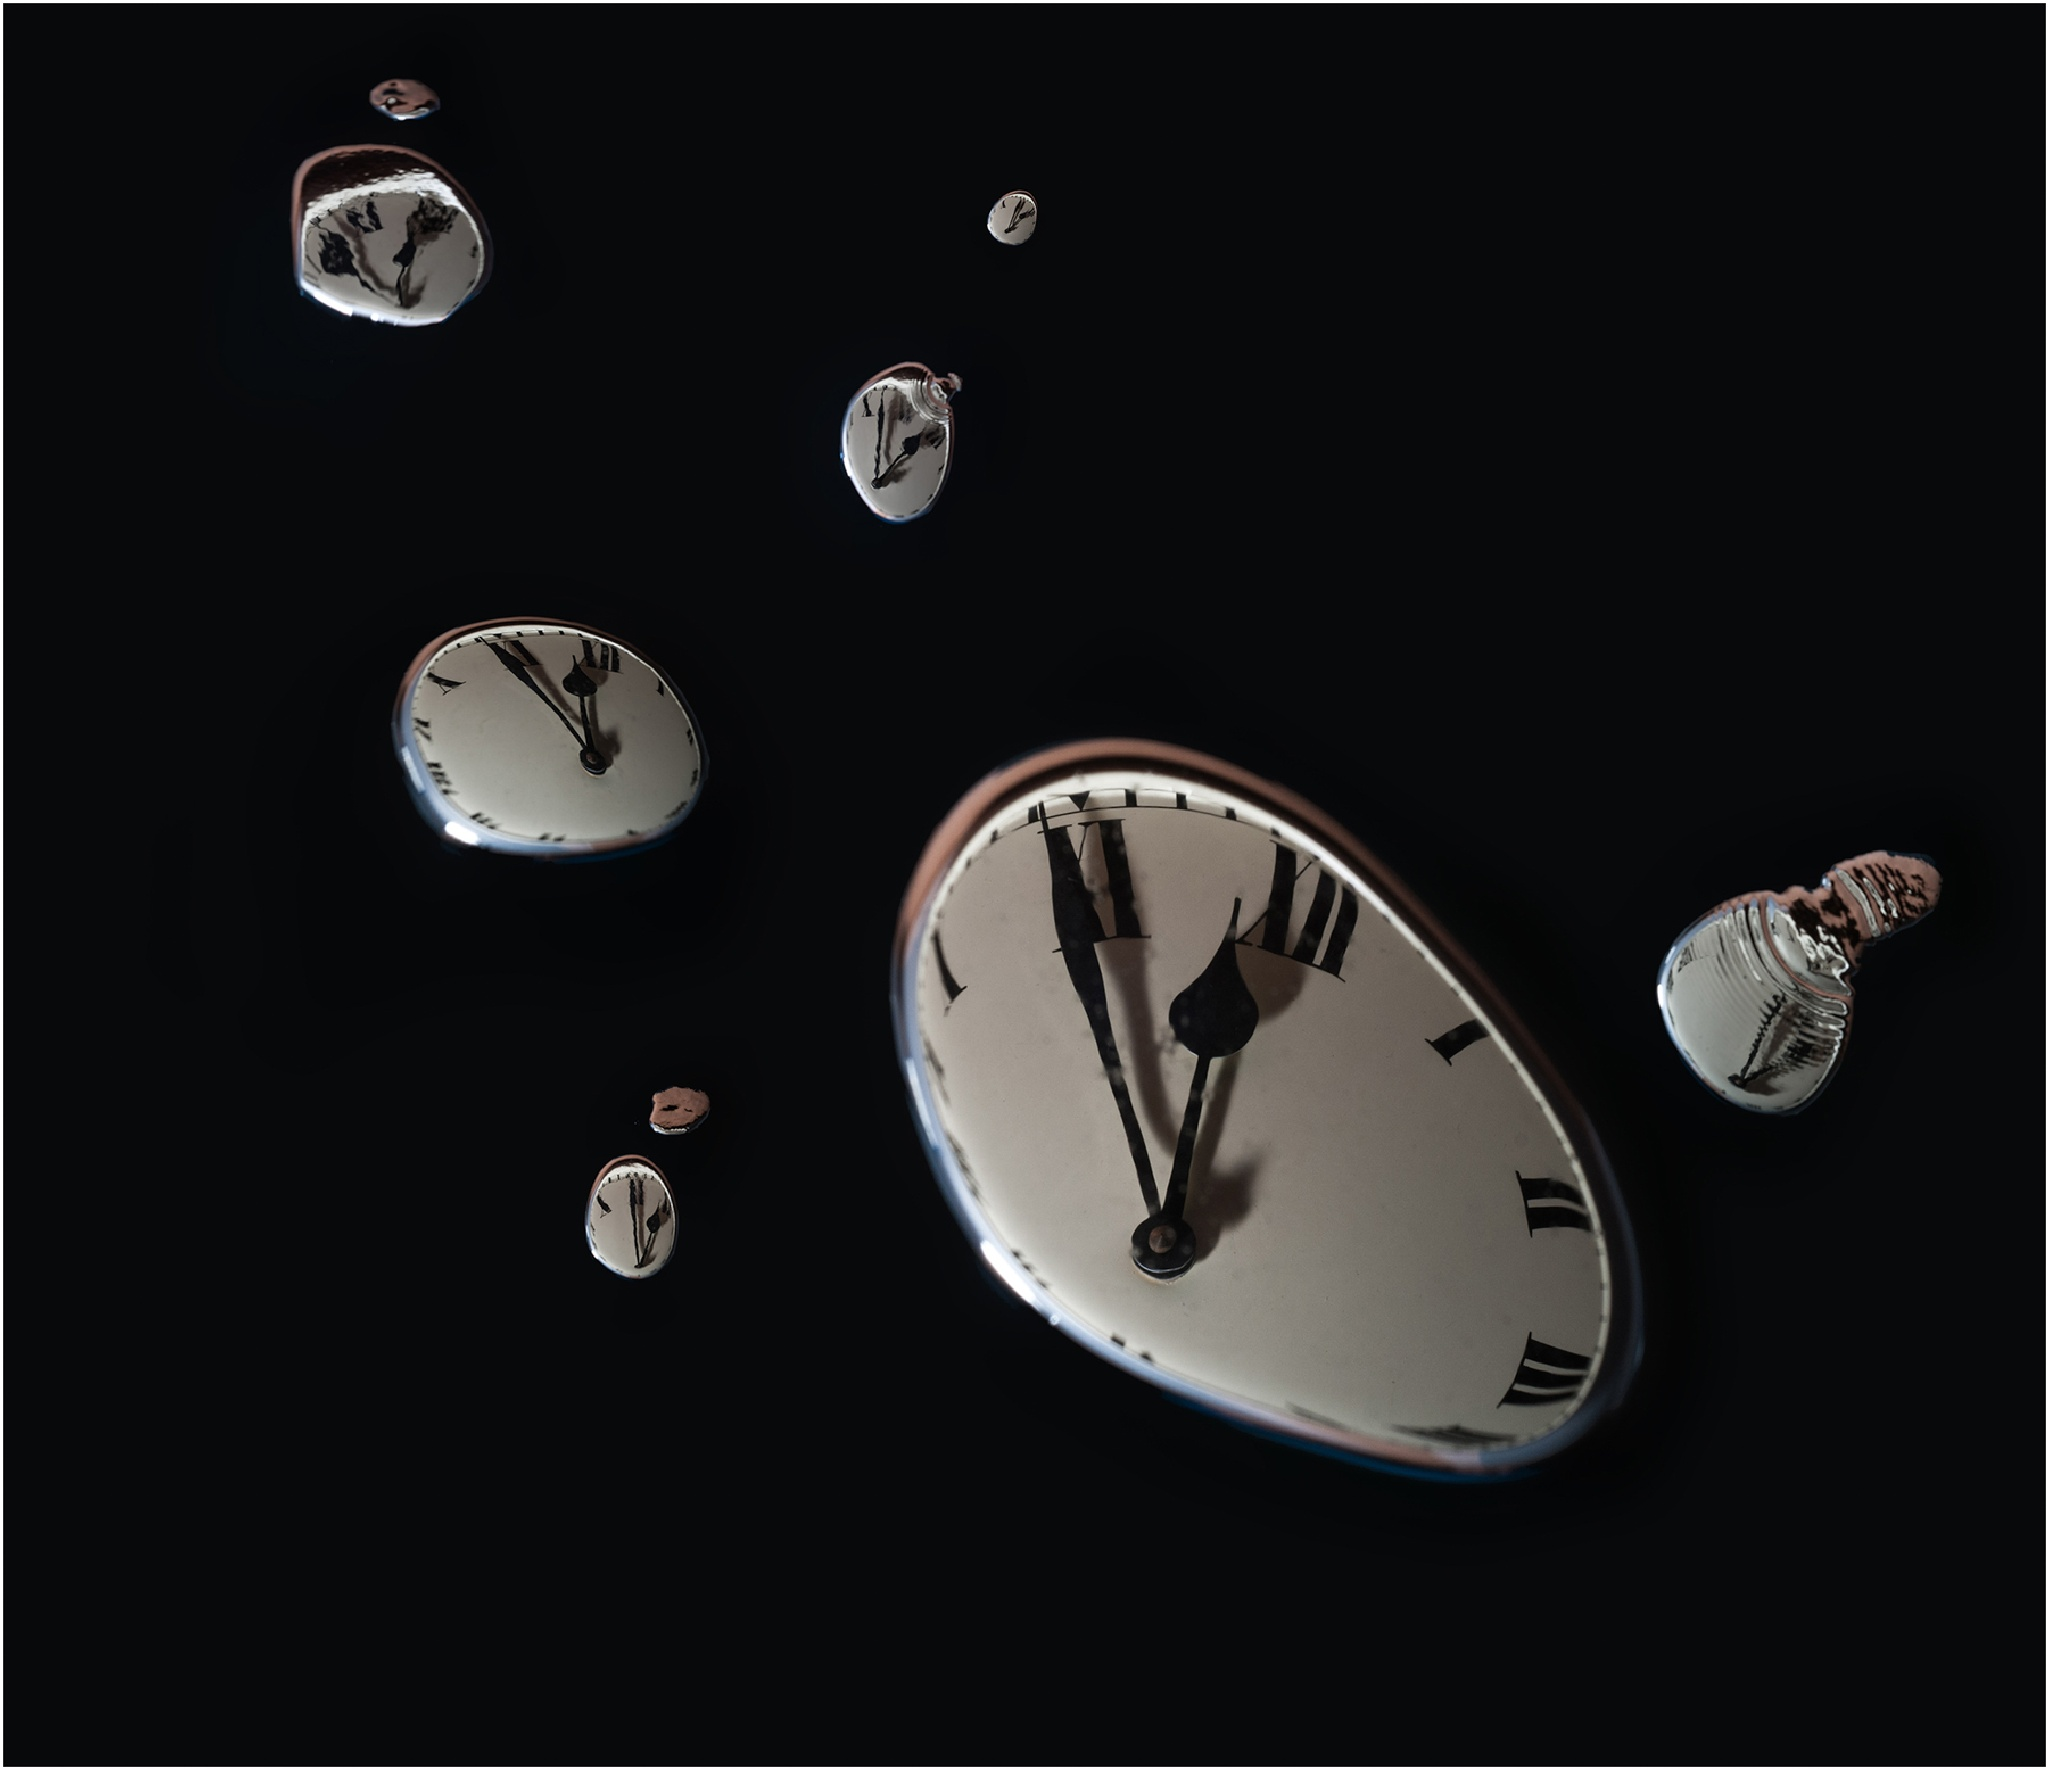 9 dimensions of space and 1of time by Elias Kamaratos